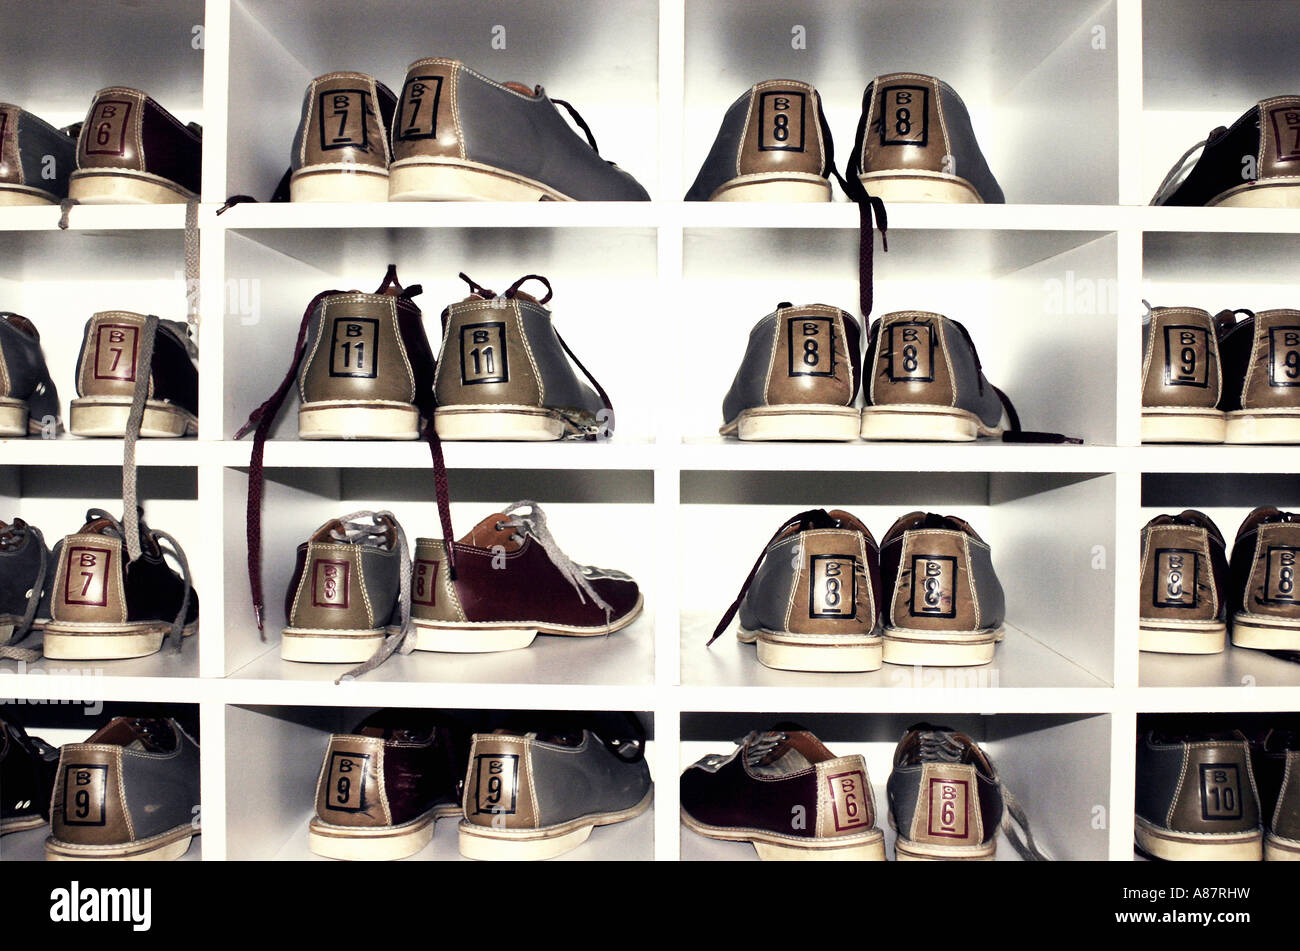 Several pairs of bowling shoes on shelf. - Stock Image